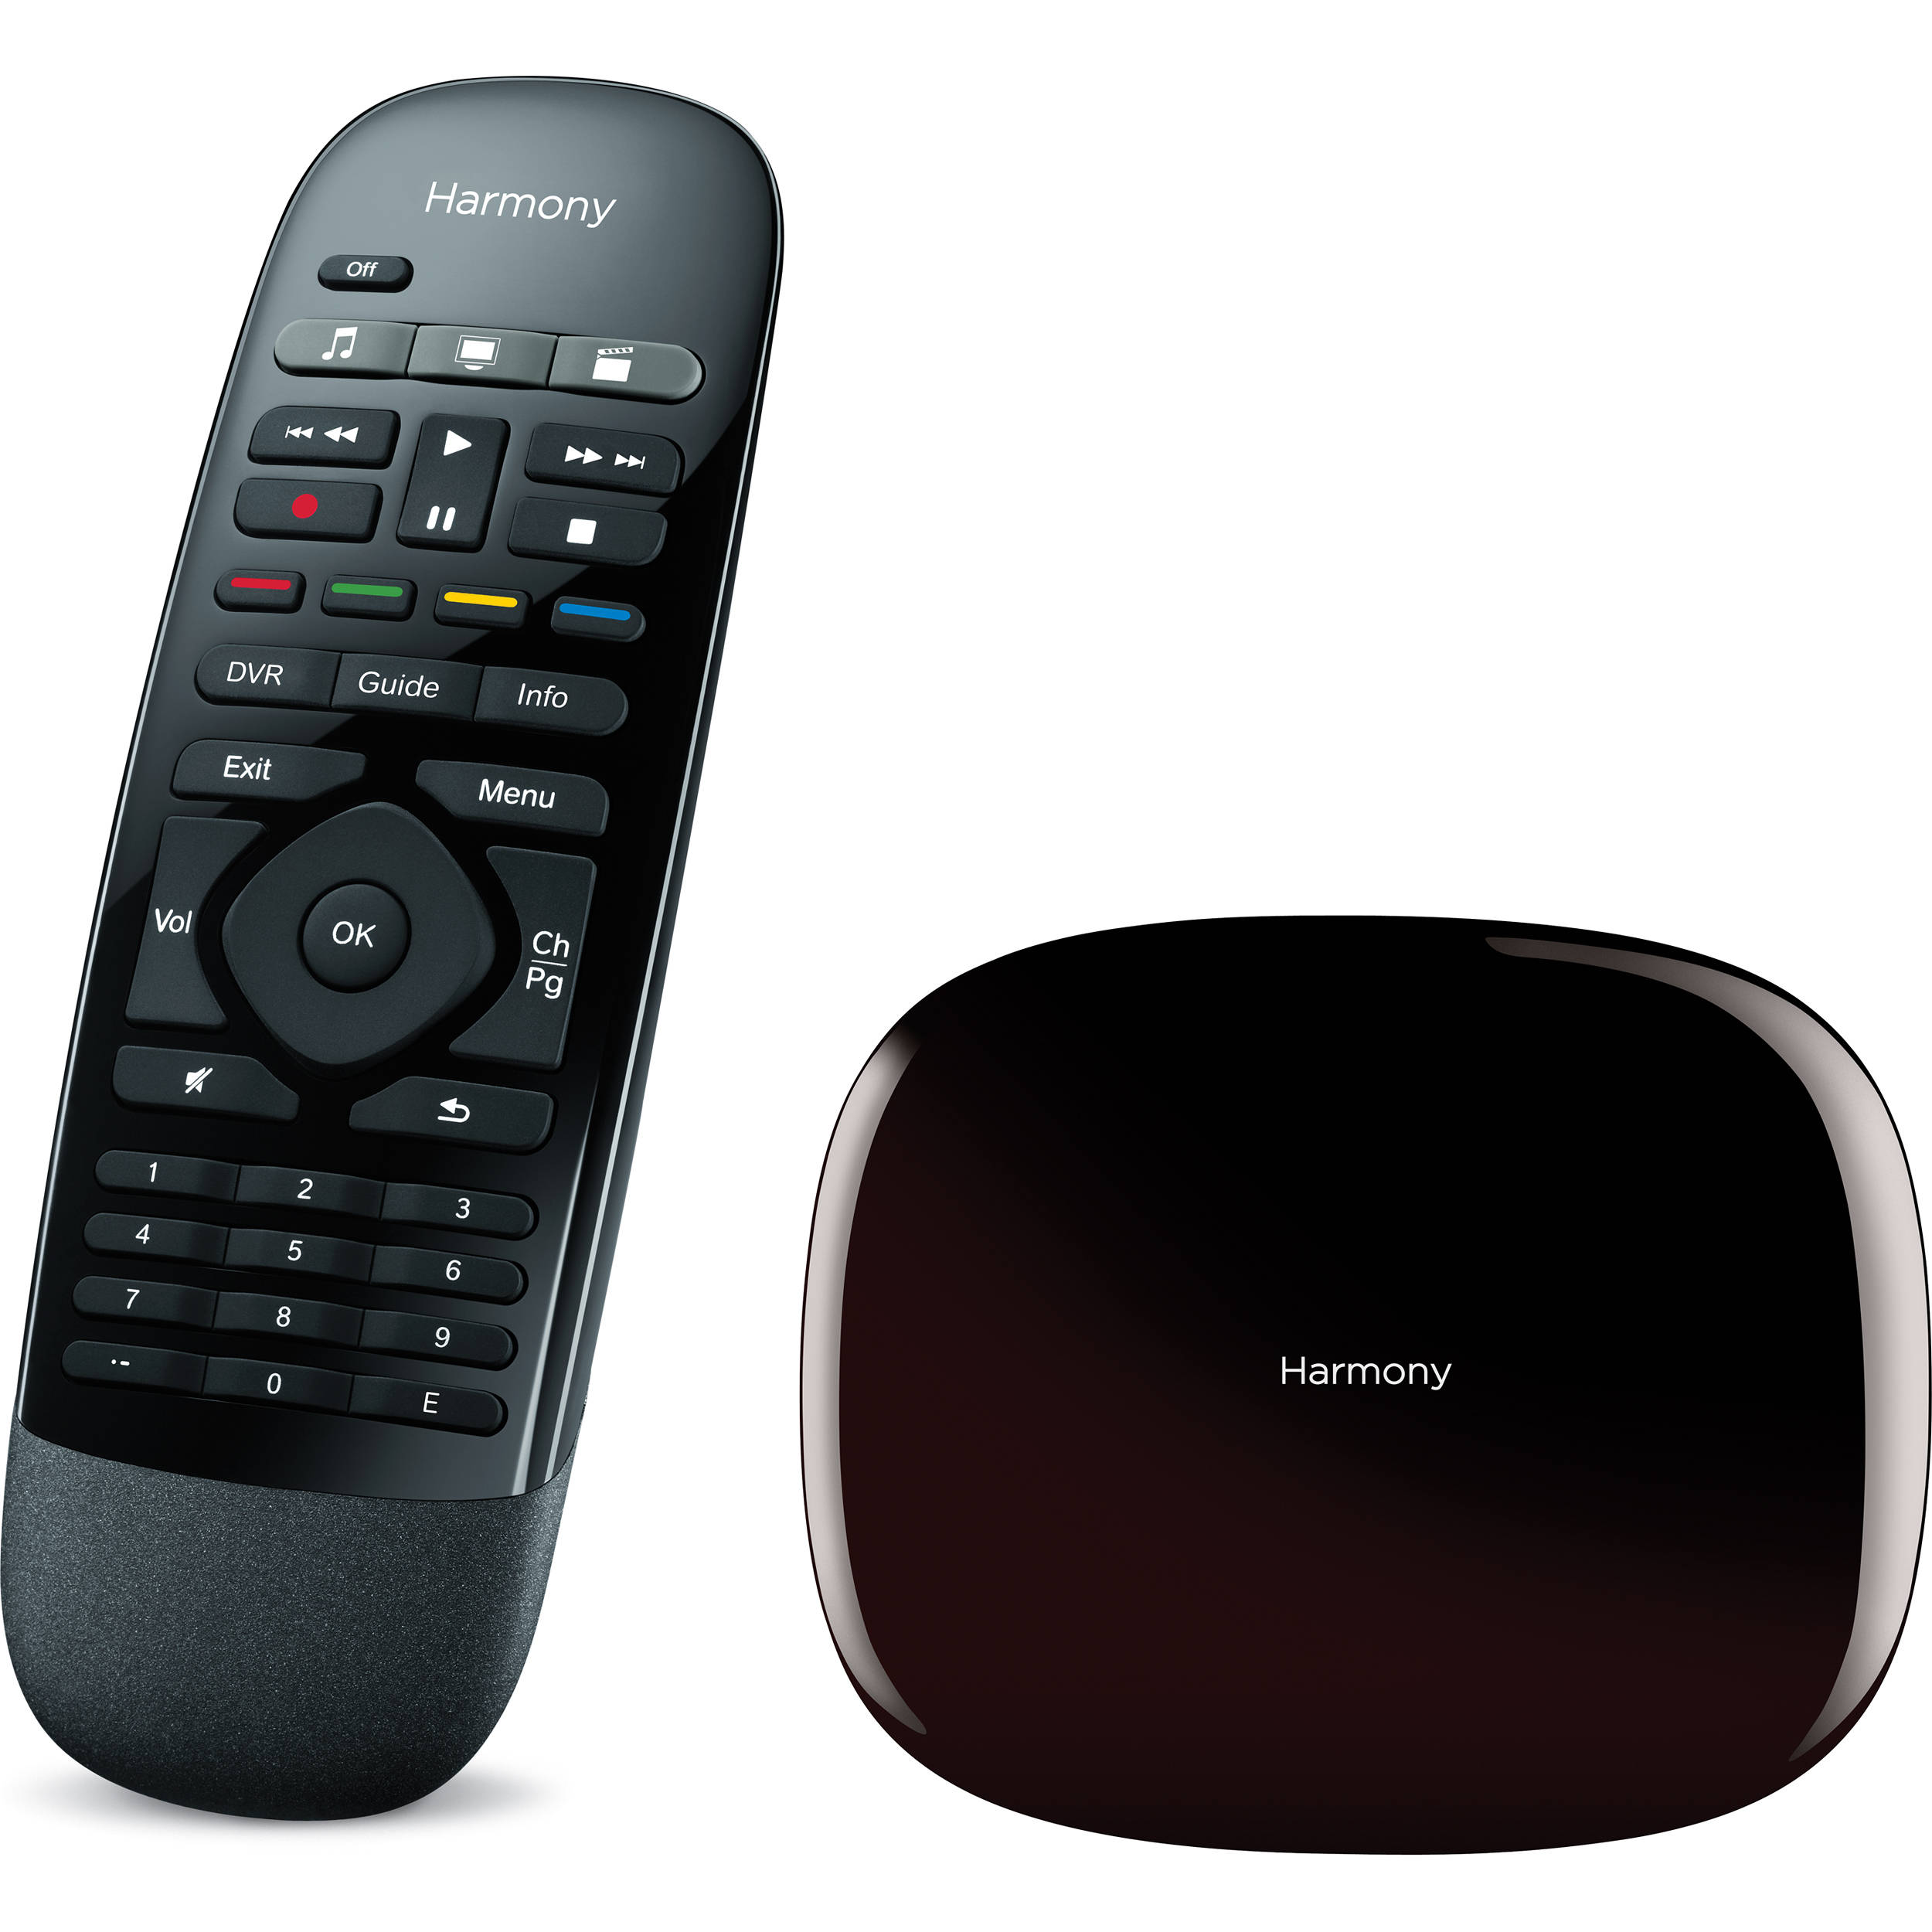 a266c166f37 Harmony/Logitech Harmony Smart Control. This image is for illustrative  purposes only